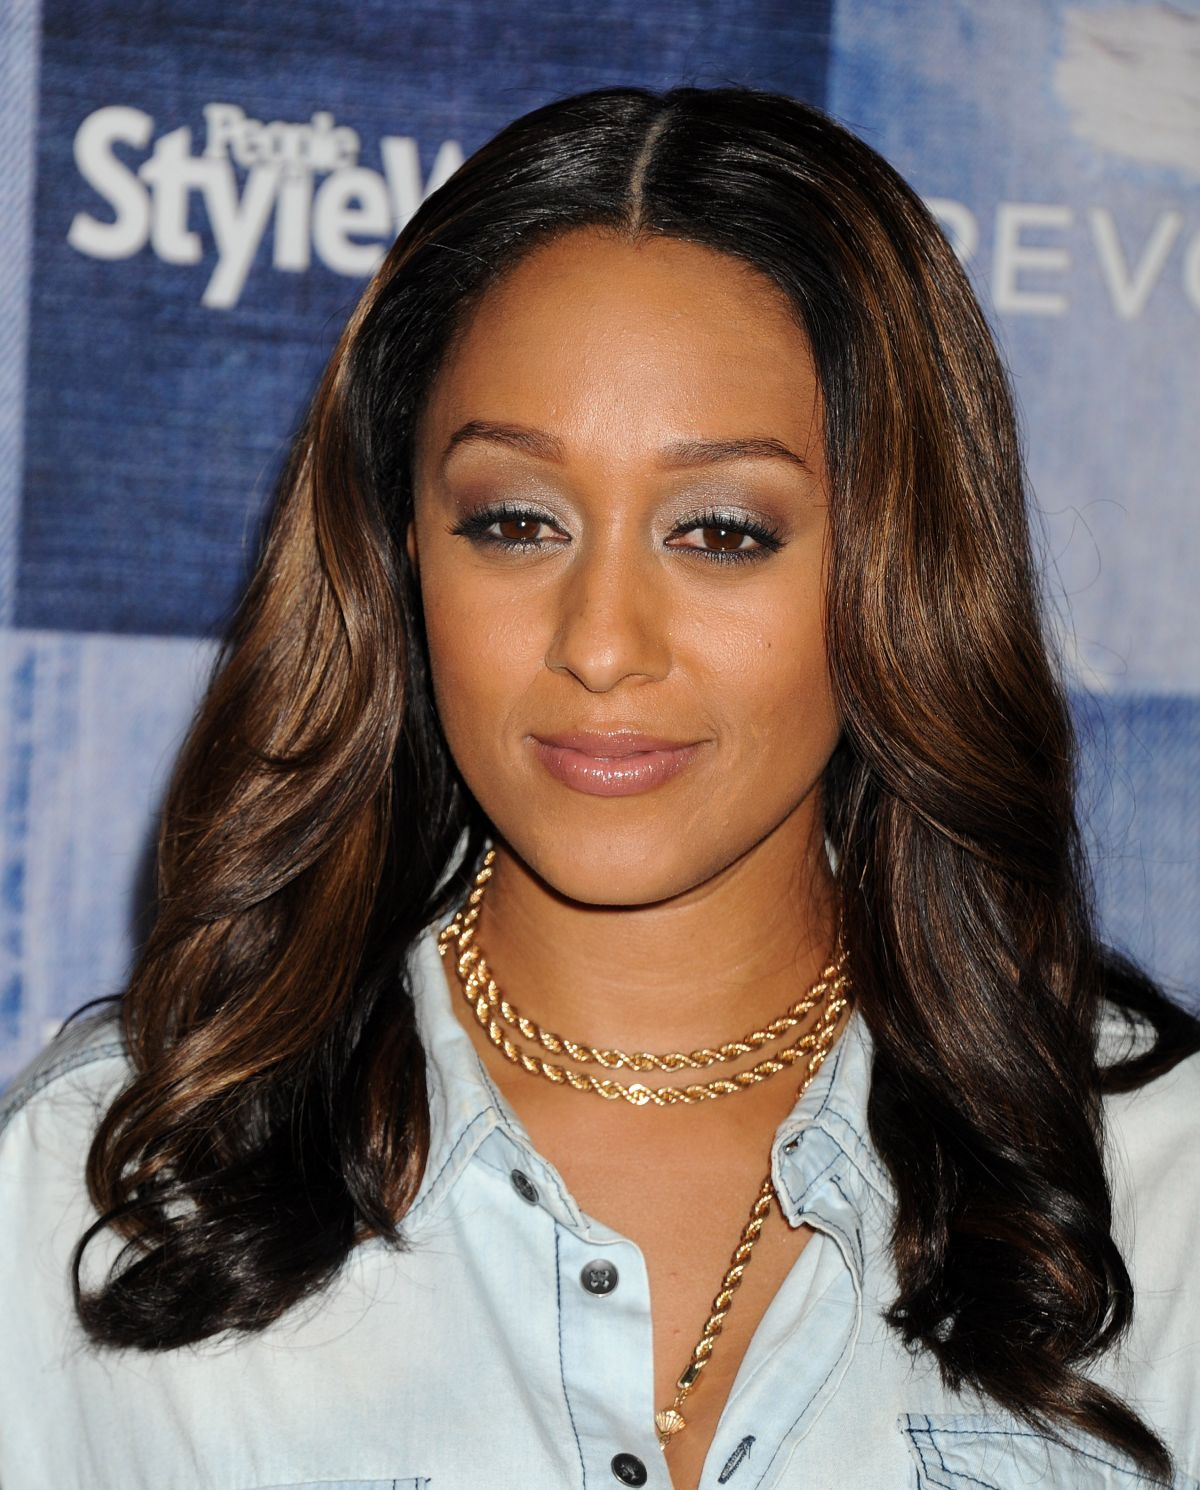 tia-mowry-at-people-stylewatch-4th-annual-denim-party_2.jpg (1200×1490)